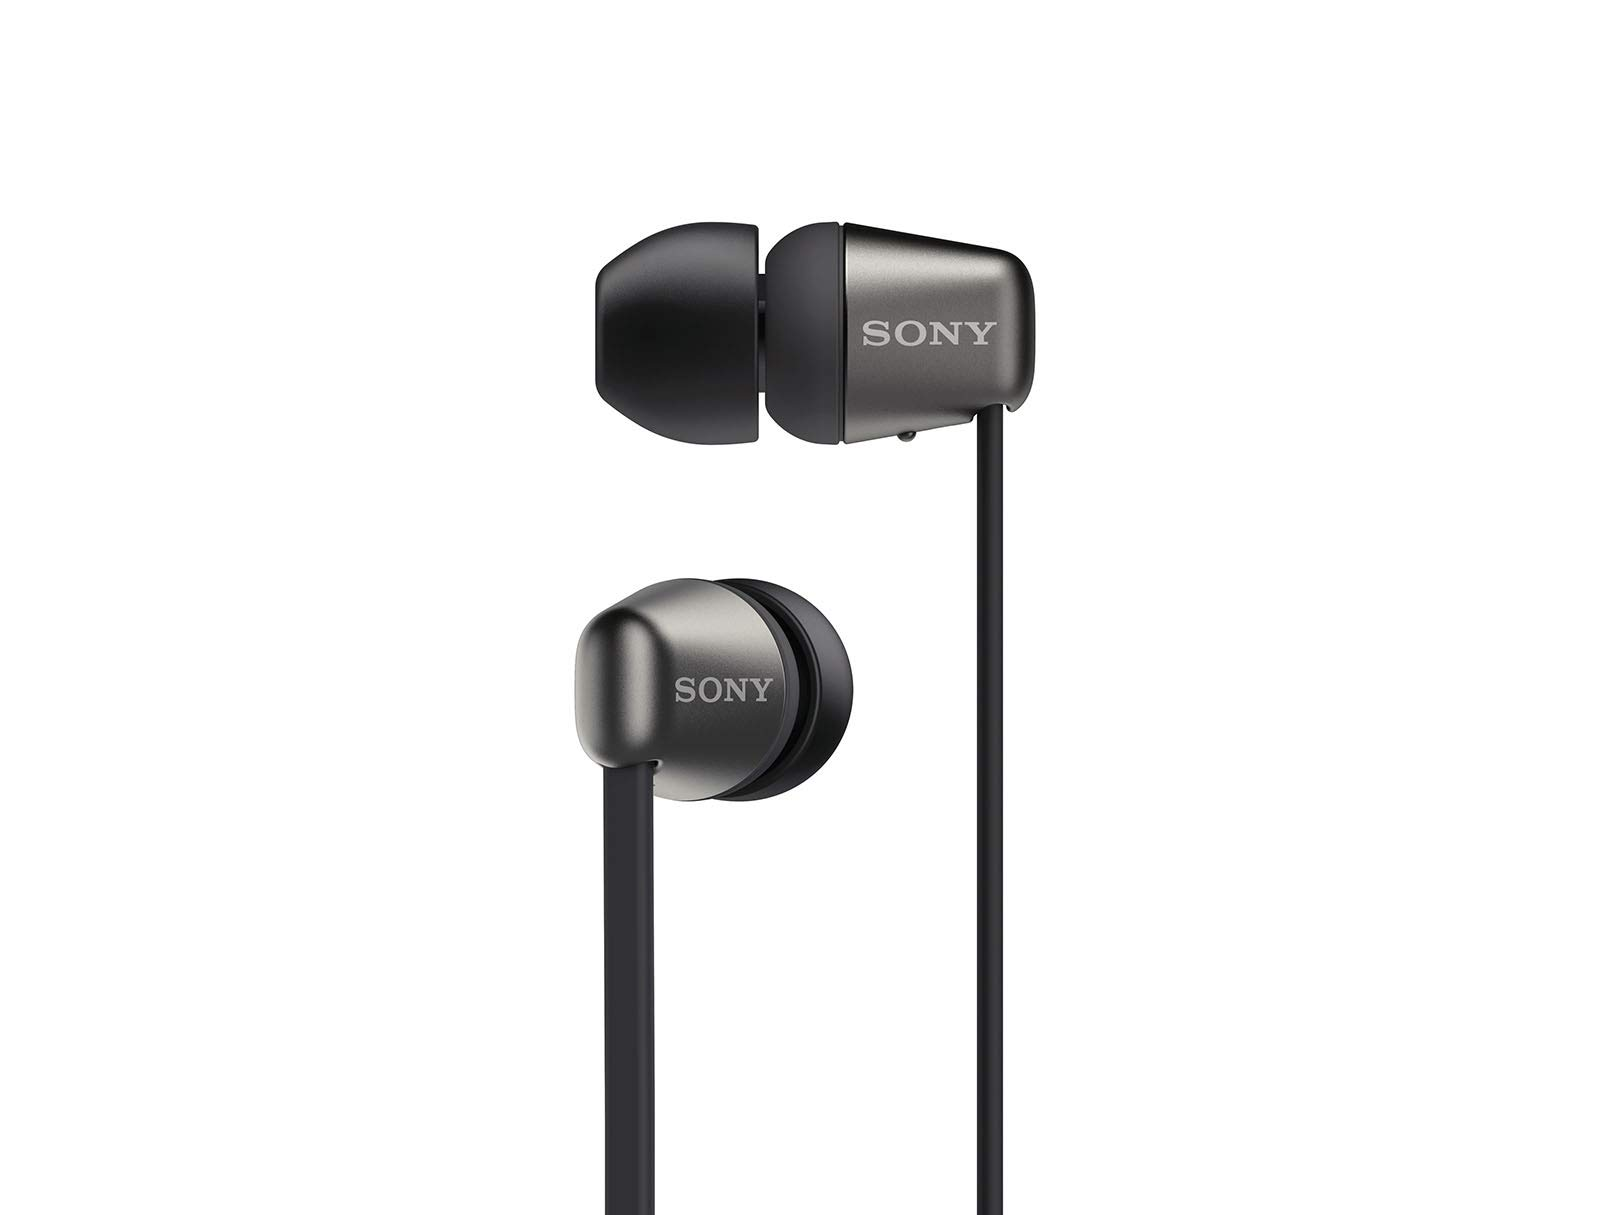 Amazon Com Sony Wireless In Ear Headset Headphones With Mic For Phone Call Black Wi C310 B Electronics